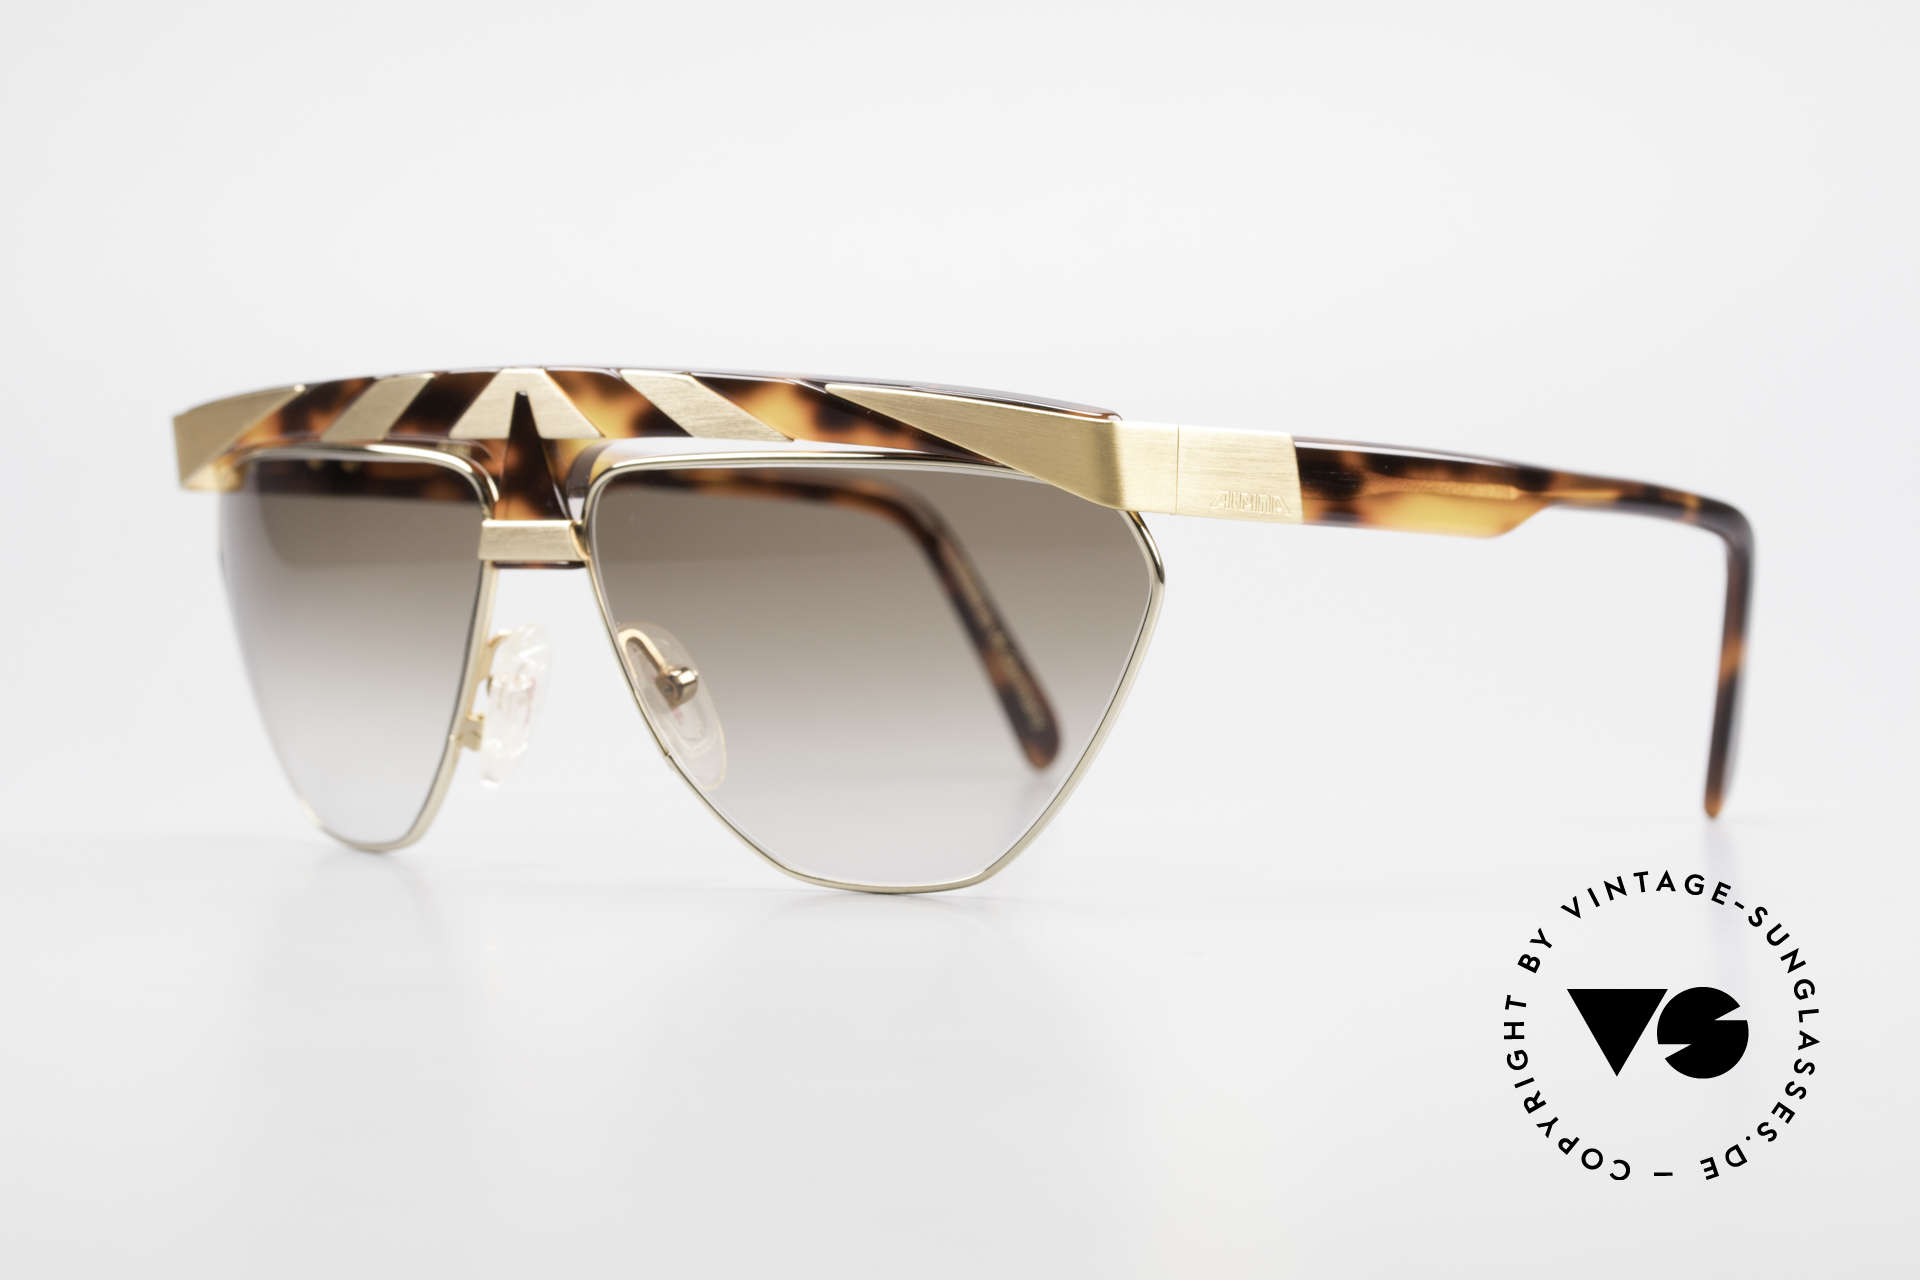 Alpina G84 80's Sunglasses Gold Plated, rare original from the 80's (handmade in W.Germany), Made for Men and Women